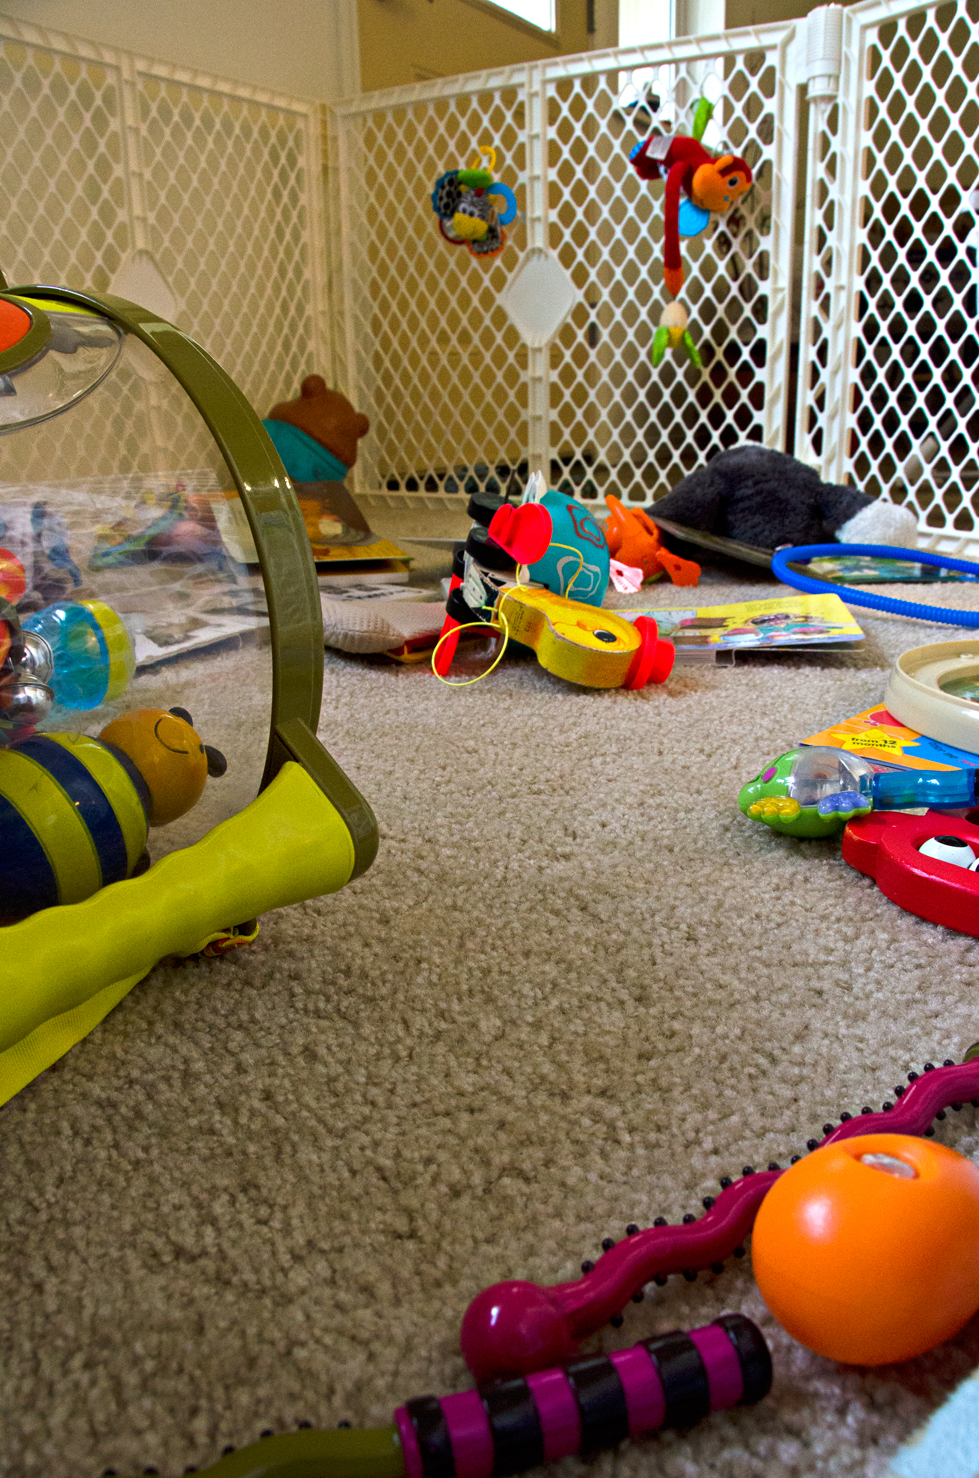 A playpen after a baby attack